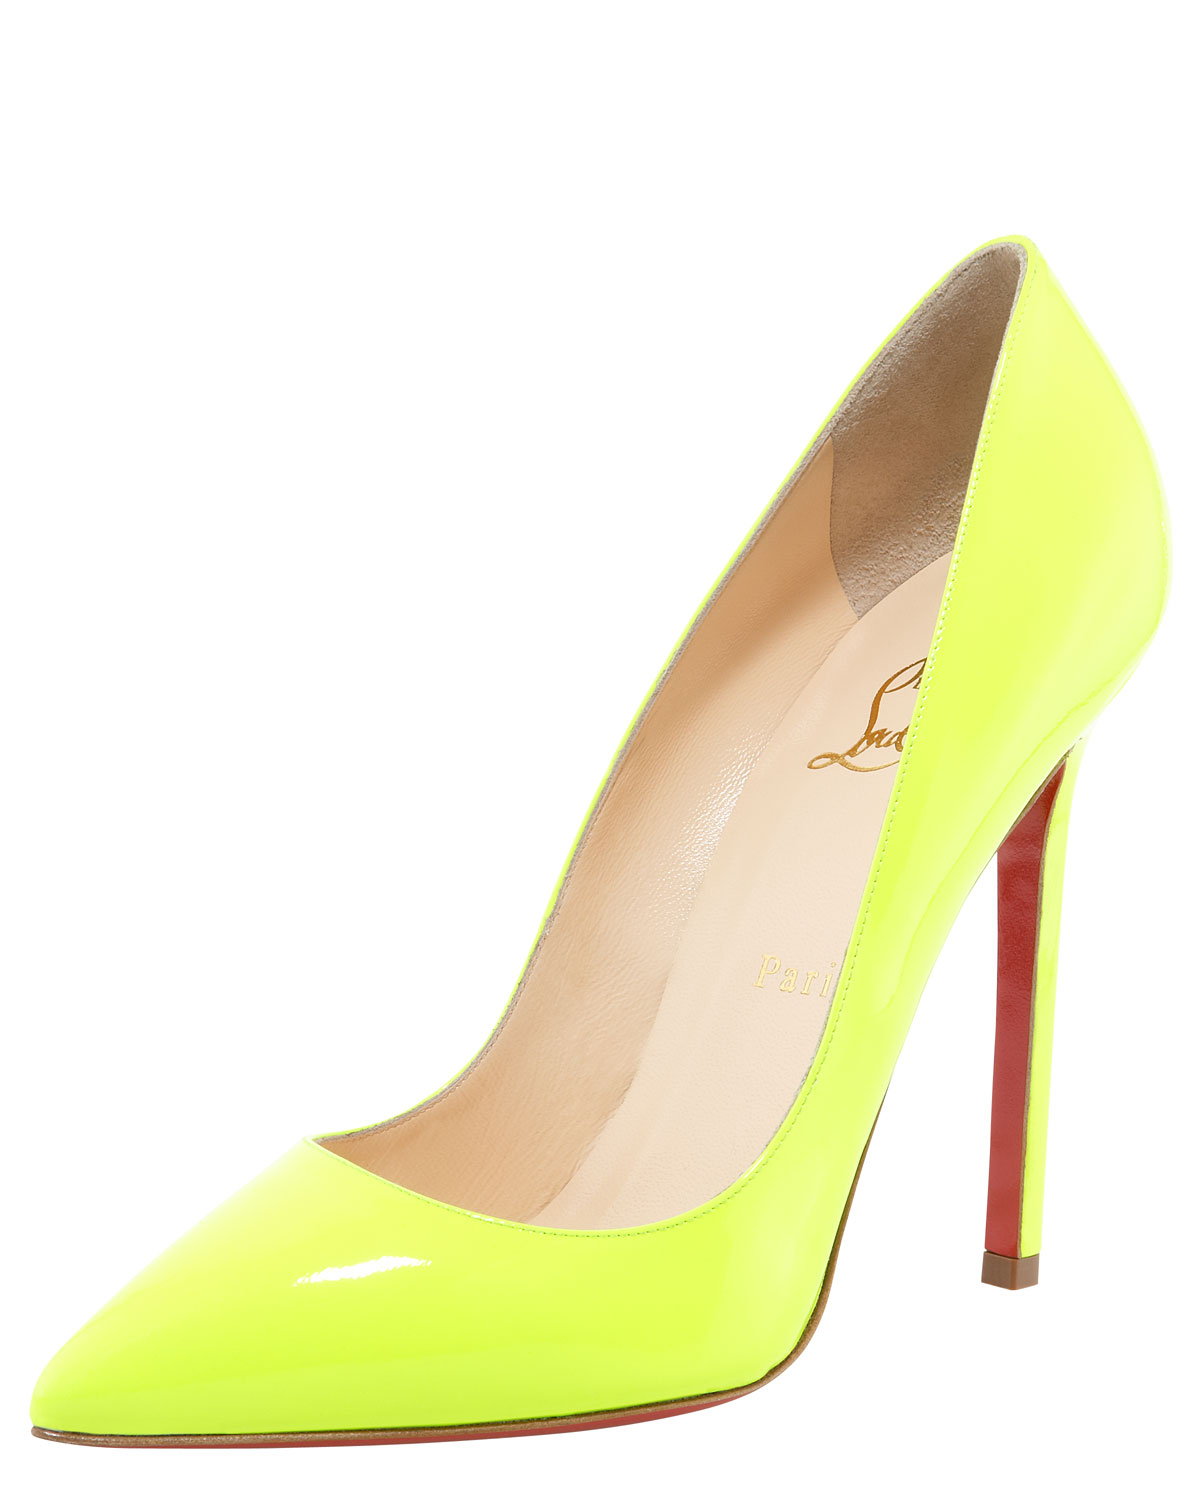 7b14f15f17f Lyst - Christian Louboutin Pigalle Neon Pump in Yellow